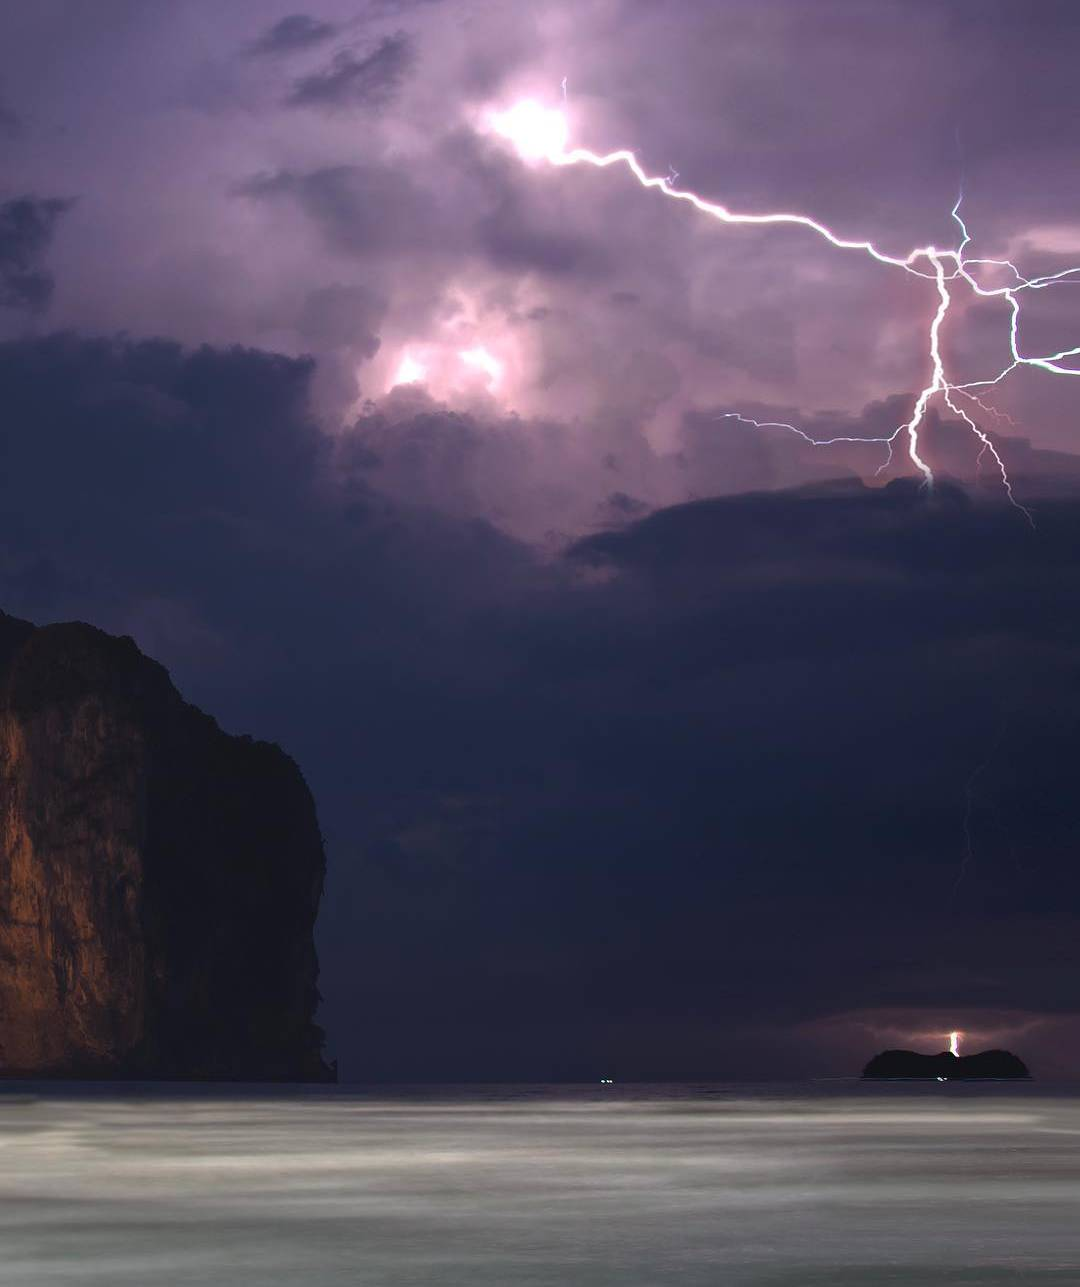 Thunderstorm over the sea of Ao Nang in Thailand